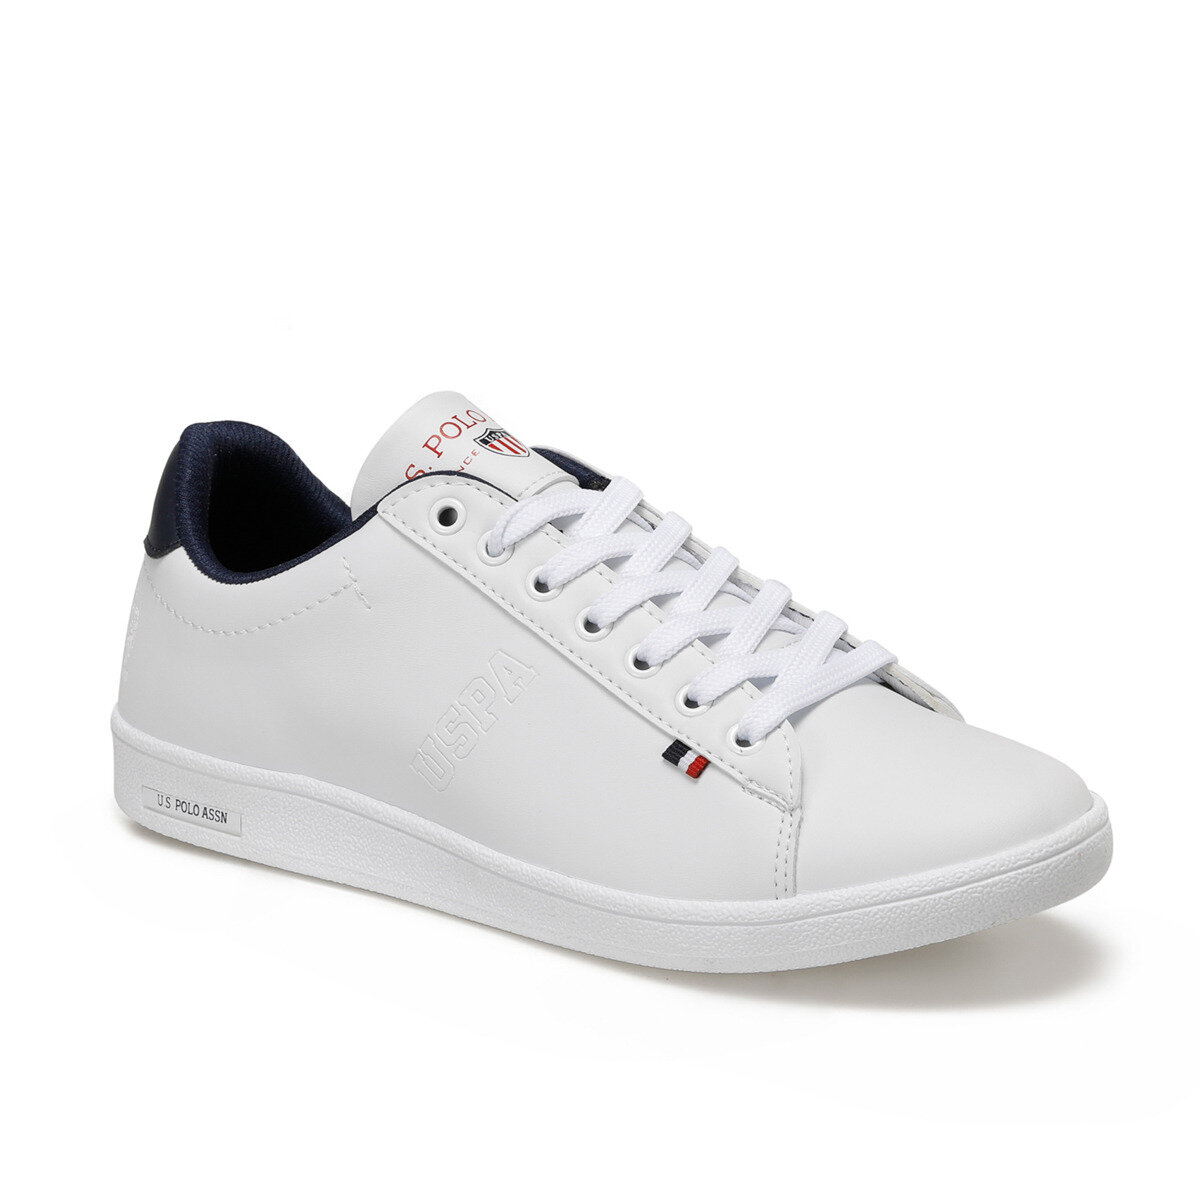 FLO White Men Sneaker Shoes 2020 New Casual Shoes Men Flat Shoes Lace-up Low Top Sneakers Tenis Masculino U.S. POLO ASSN. FRANCO